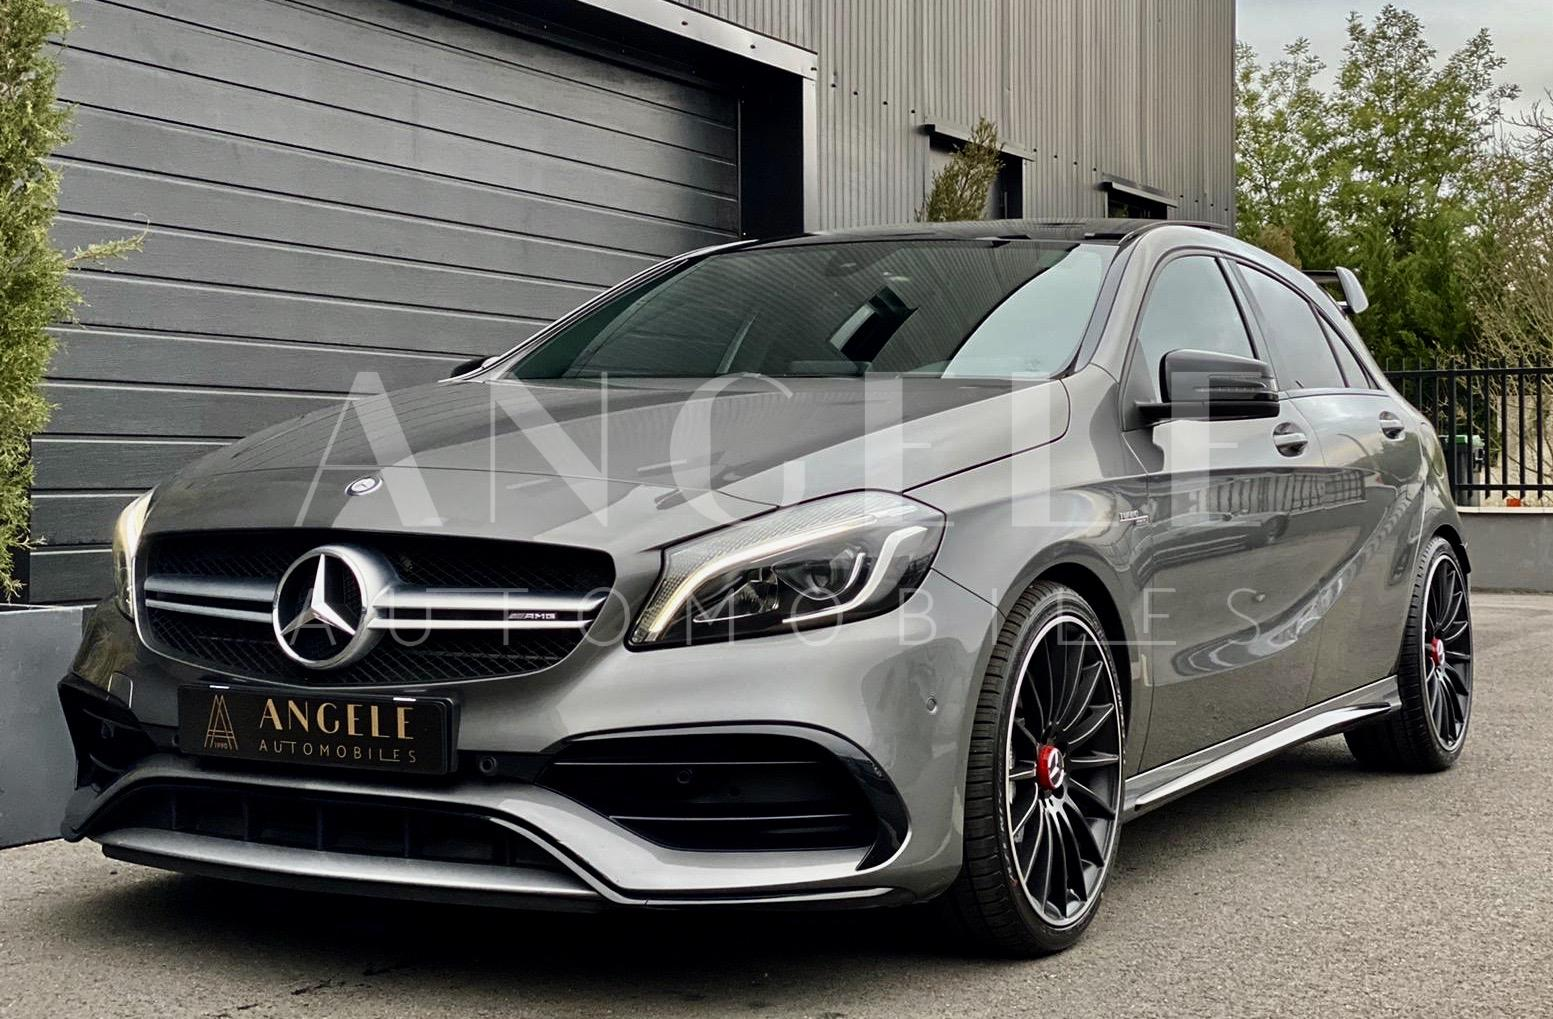 Mercedes A45 AMG Toulouse